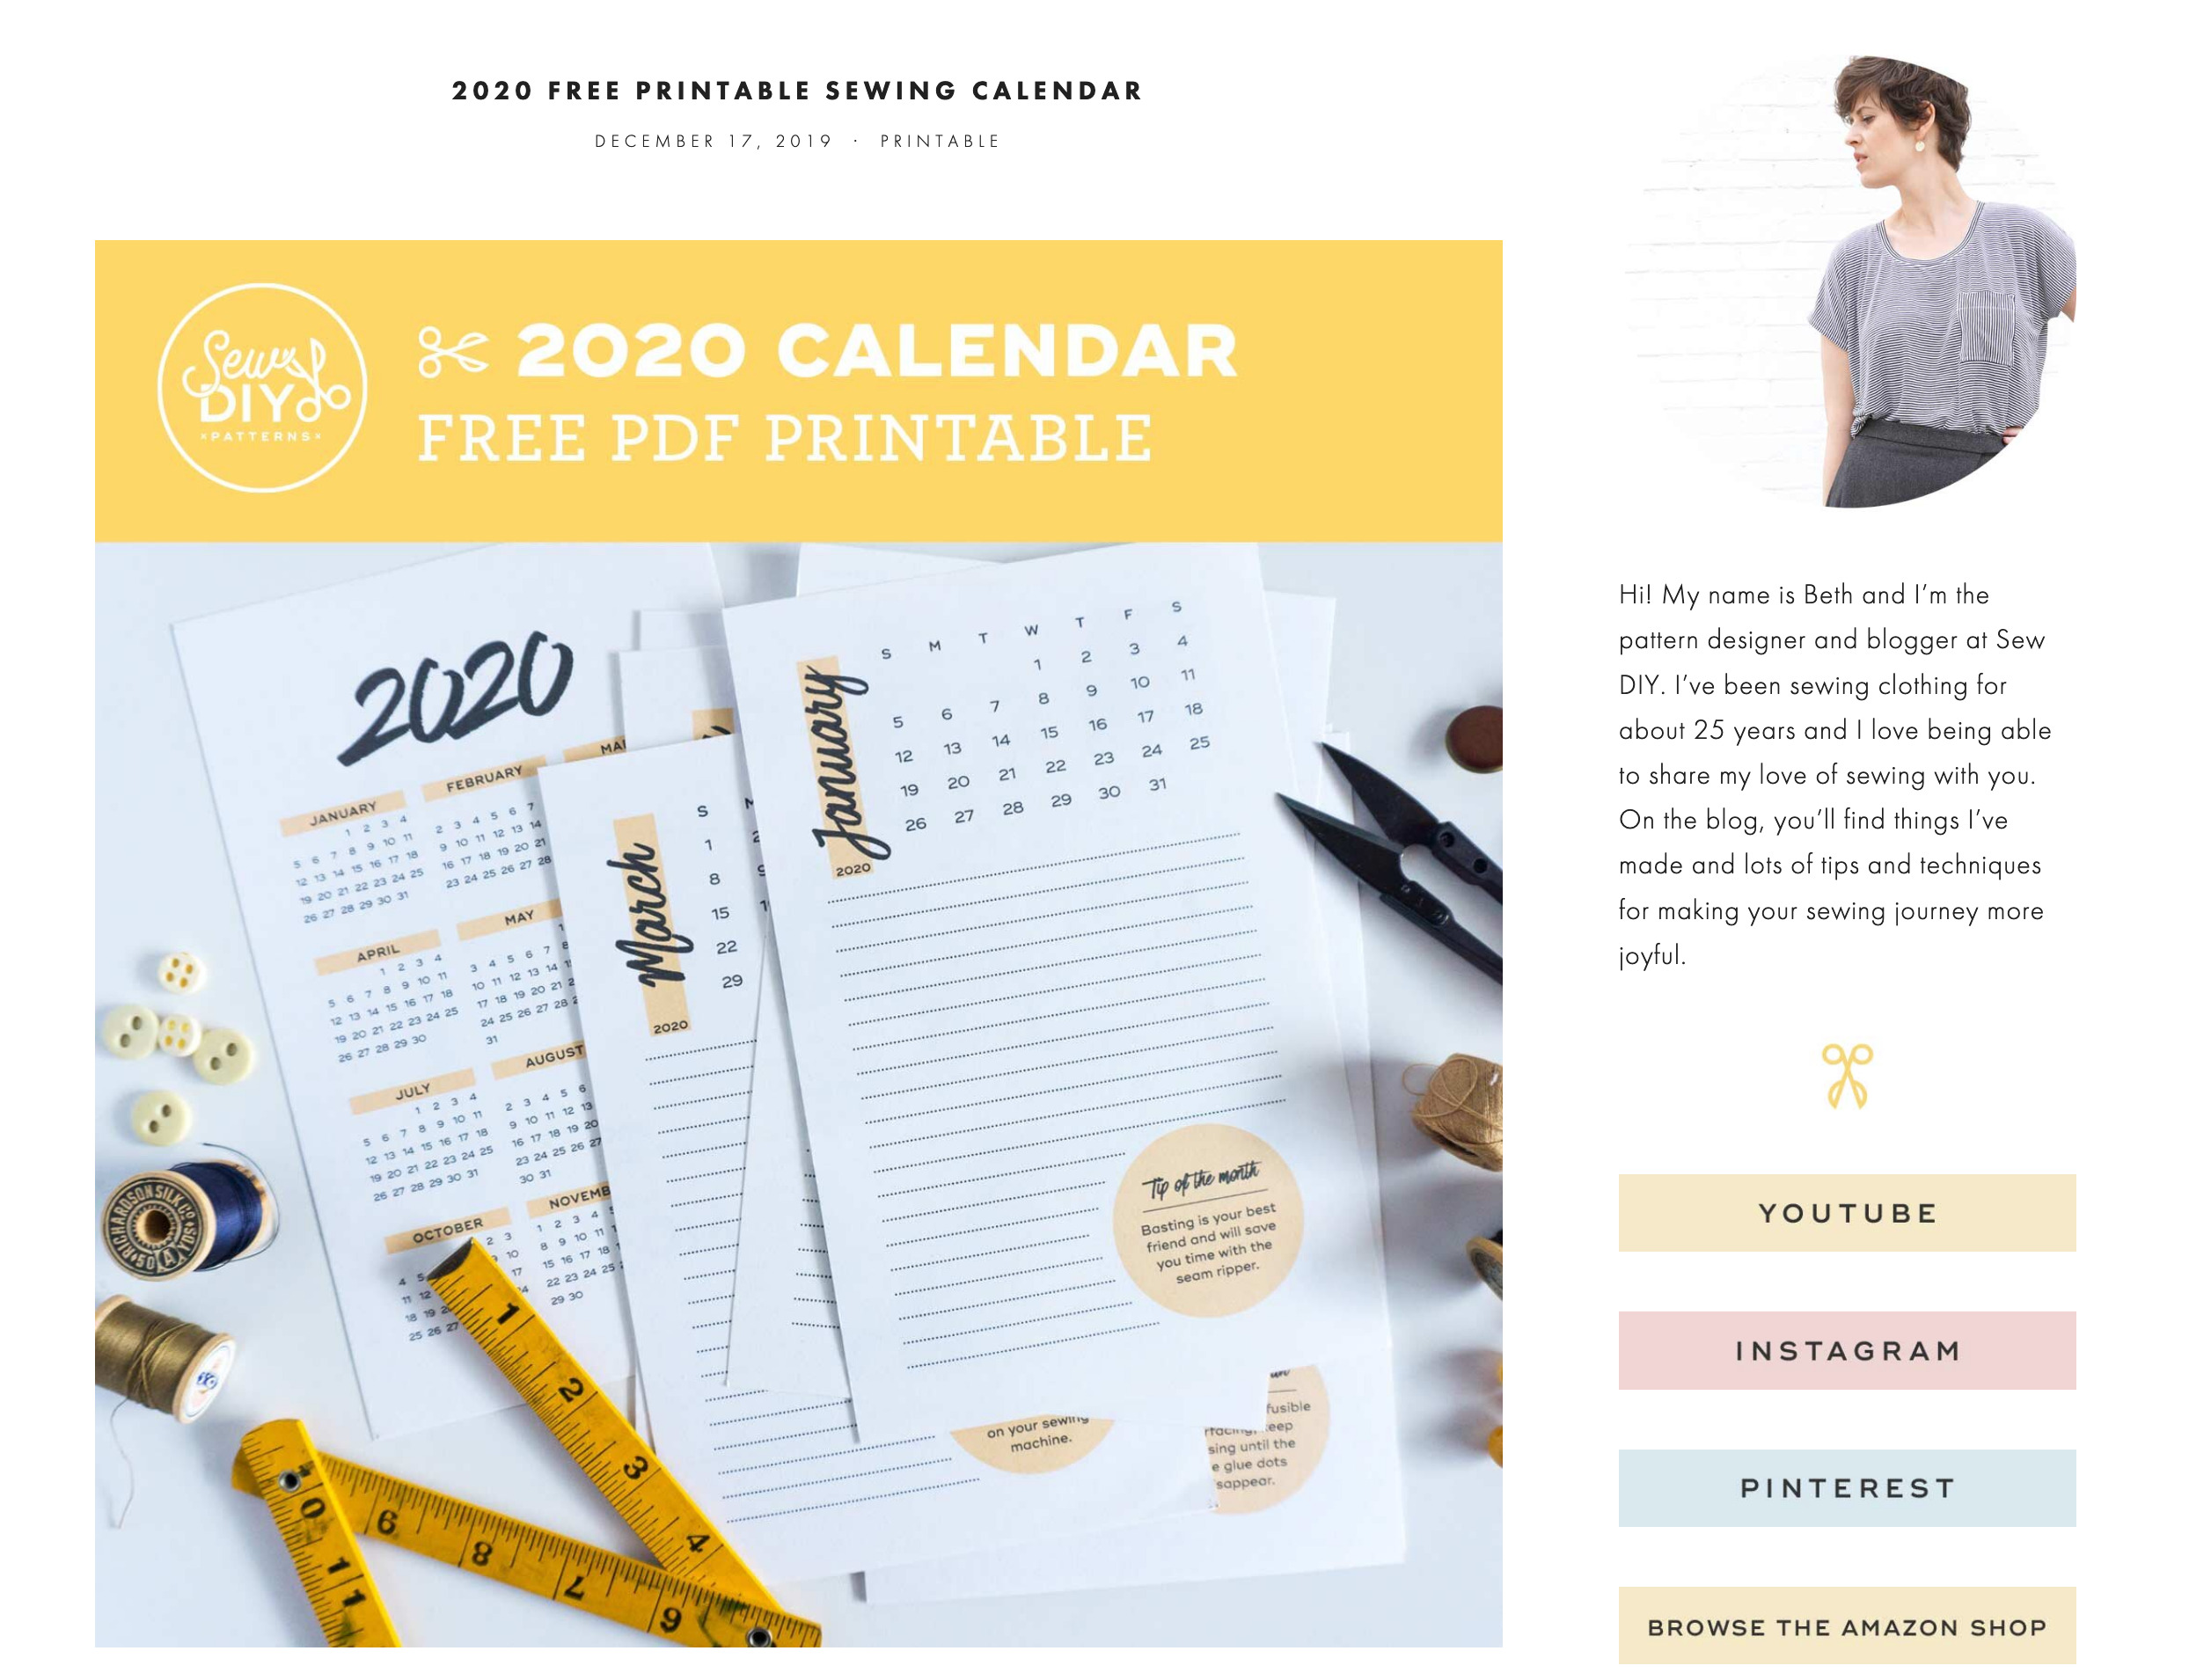 Screenshot_2019-12-29 2020 Free Printable Sewing Calendar — Sew DIY